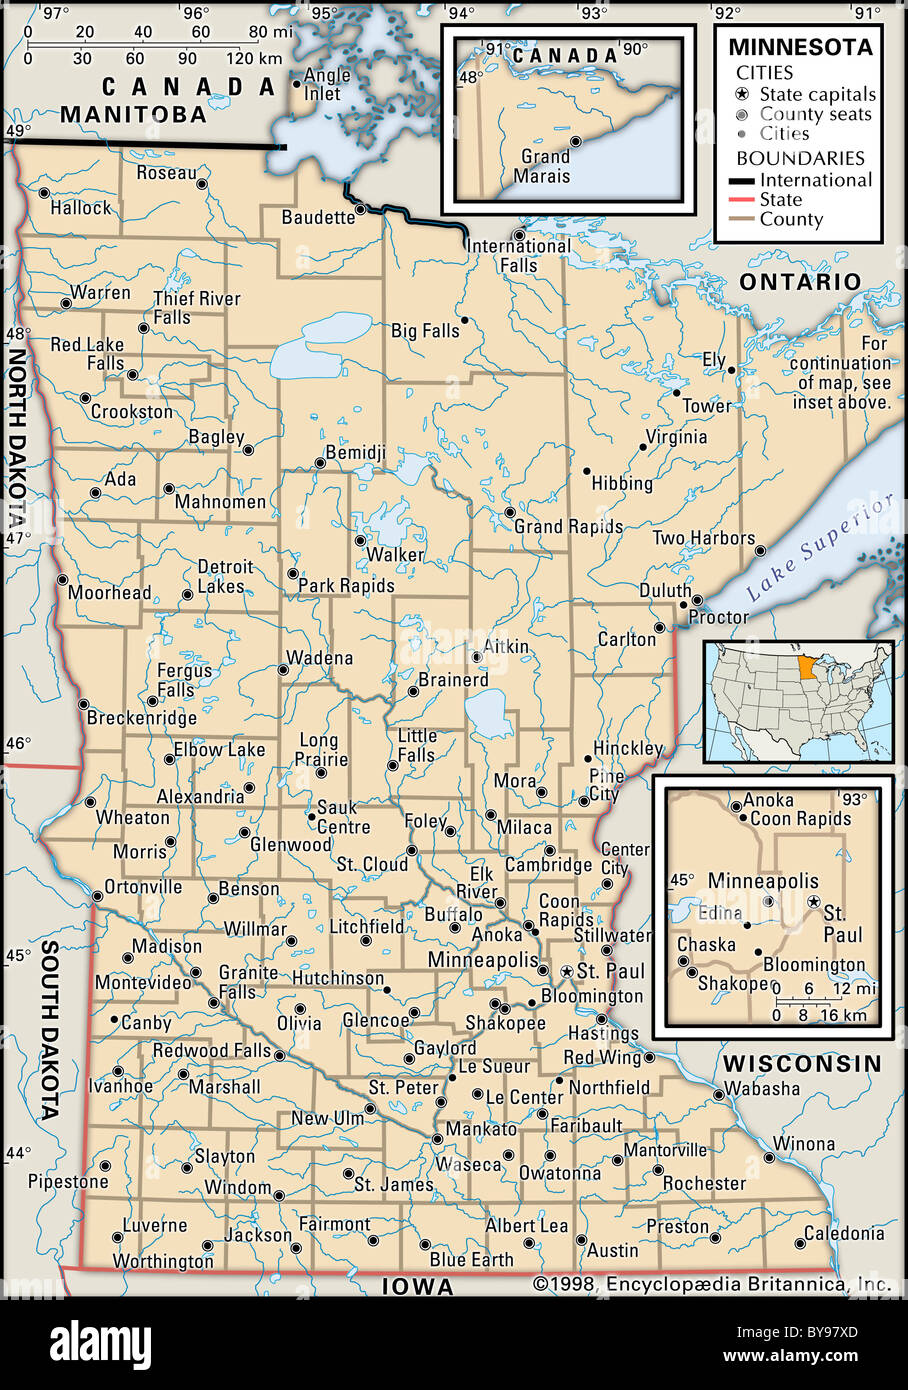 Minnesota Map Stock Photos & Minnesota Map Stock Images - Alamy on minnesota casinos, minnesota counties, maryland map, minnesota abbreviation, minnesota weather, minnesota geography, louisiana map, minnesota information, mississippi map, north carolina map, minnesota food, minnesota towns, minnesota population density, minnesota birds, maine map, minnesota people, minnesota radar, minnesota flag, minnesota nickname, minnesota mapquest, minnesota outline, kansas map, oklahoma map, new jersey map, minnesota national parks, minnesota travel, minnesota border, minnesota silhouette,